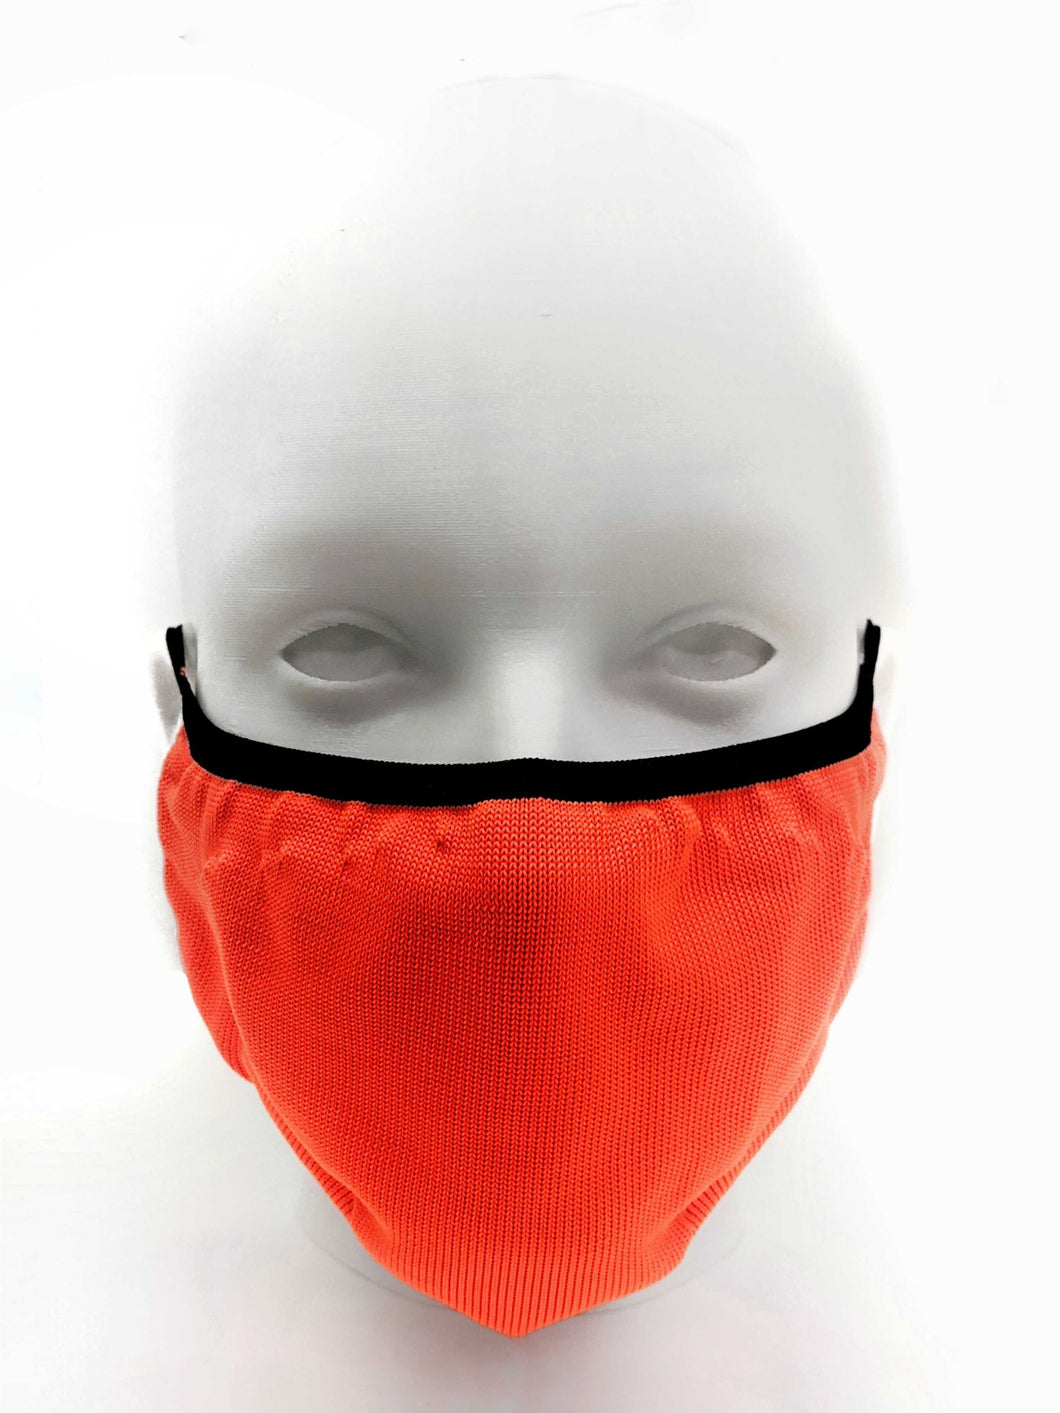 Flex Plus Mask - Pack of 2 - Myant PPE Solutions